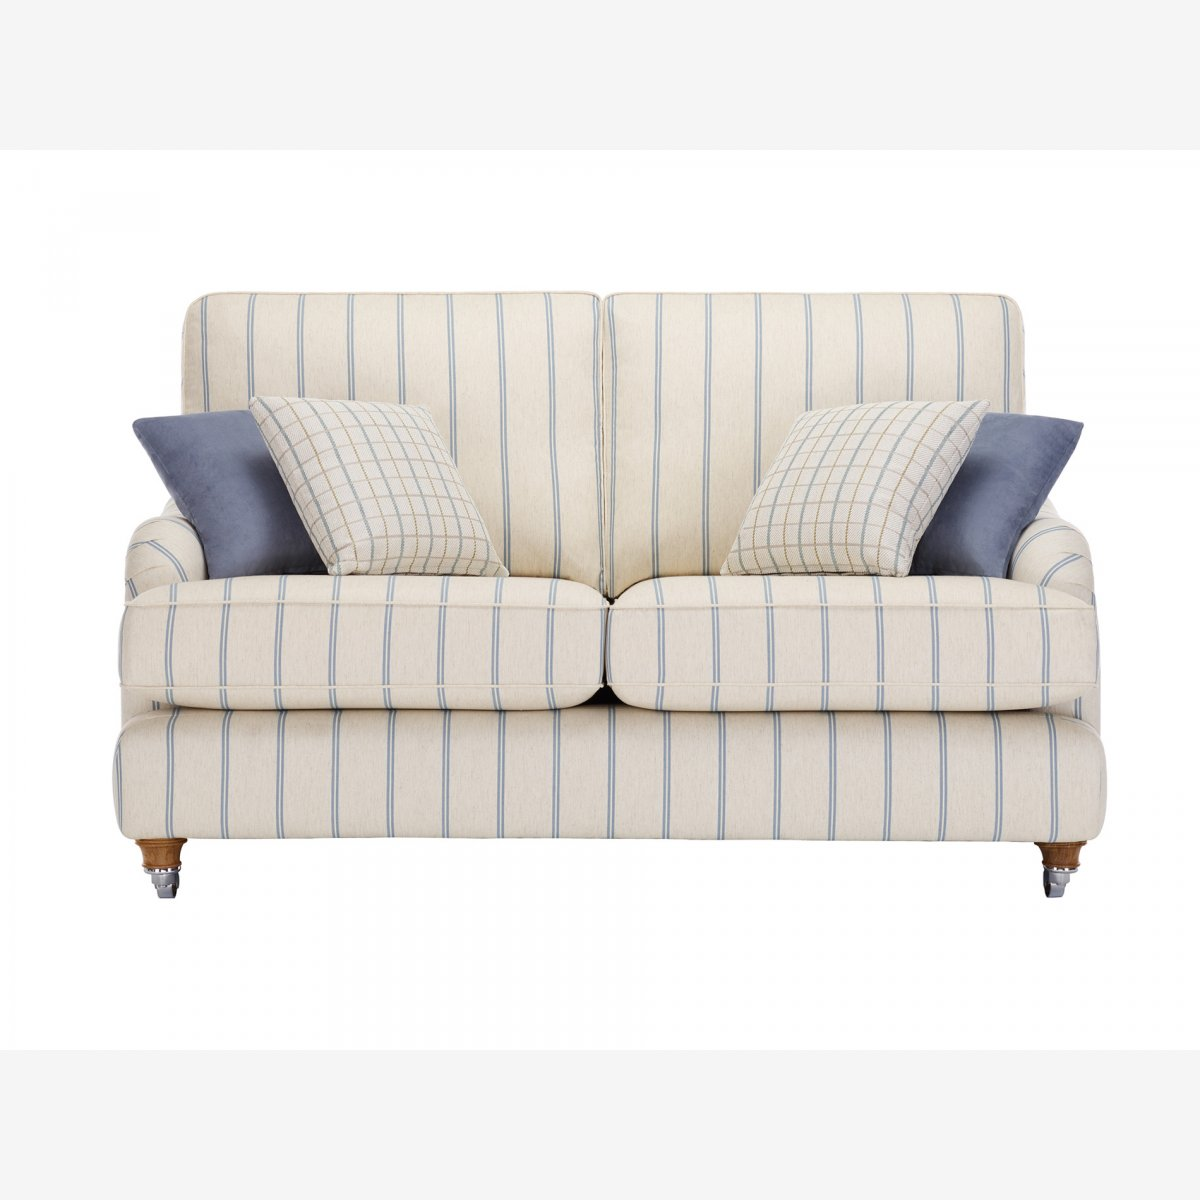 stripe sofa 3 pc convertible sectional bed with storage westbury 2 seater in kendrick oak furniture land